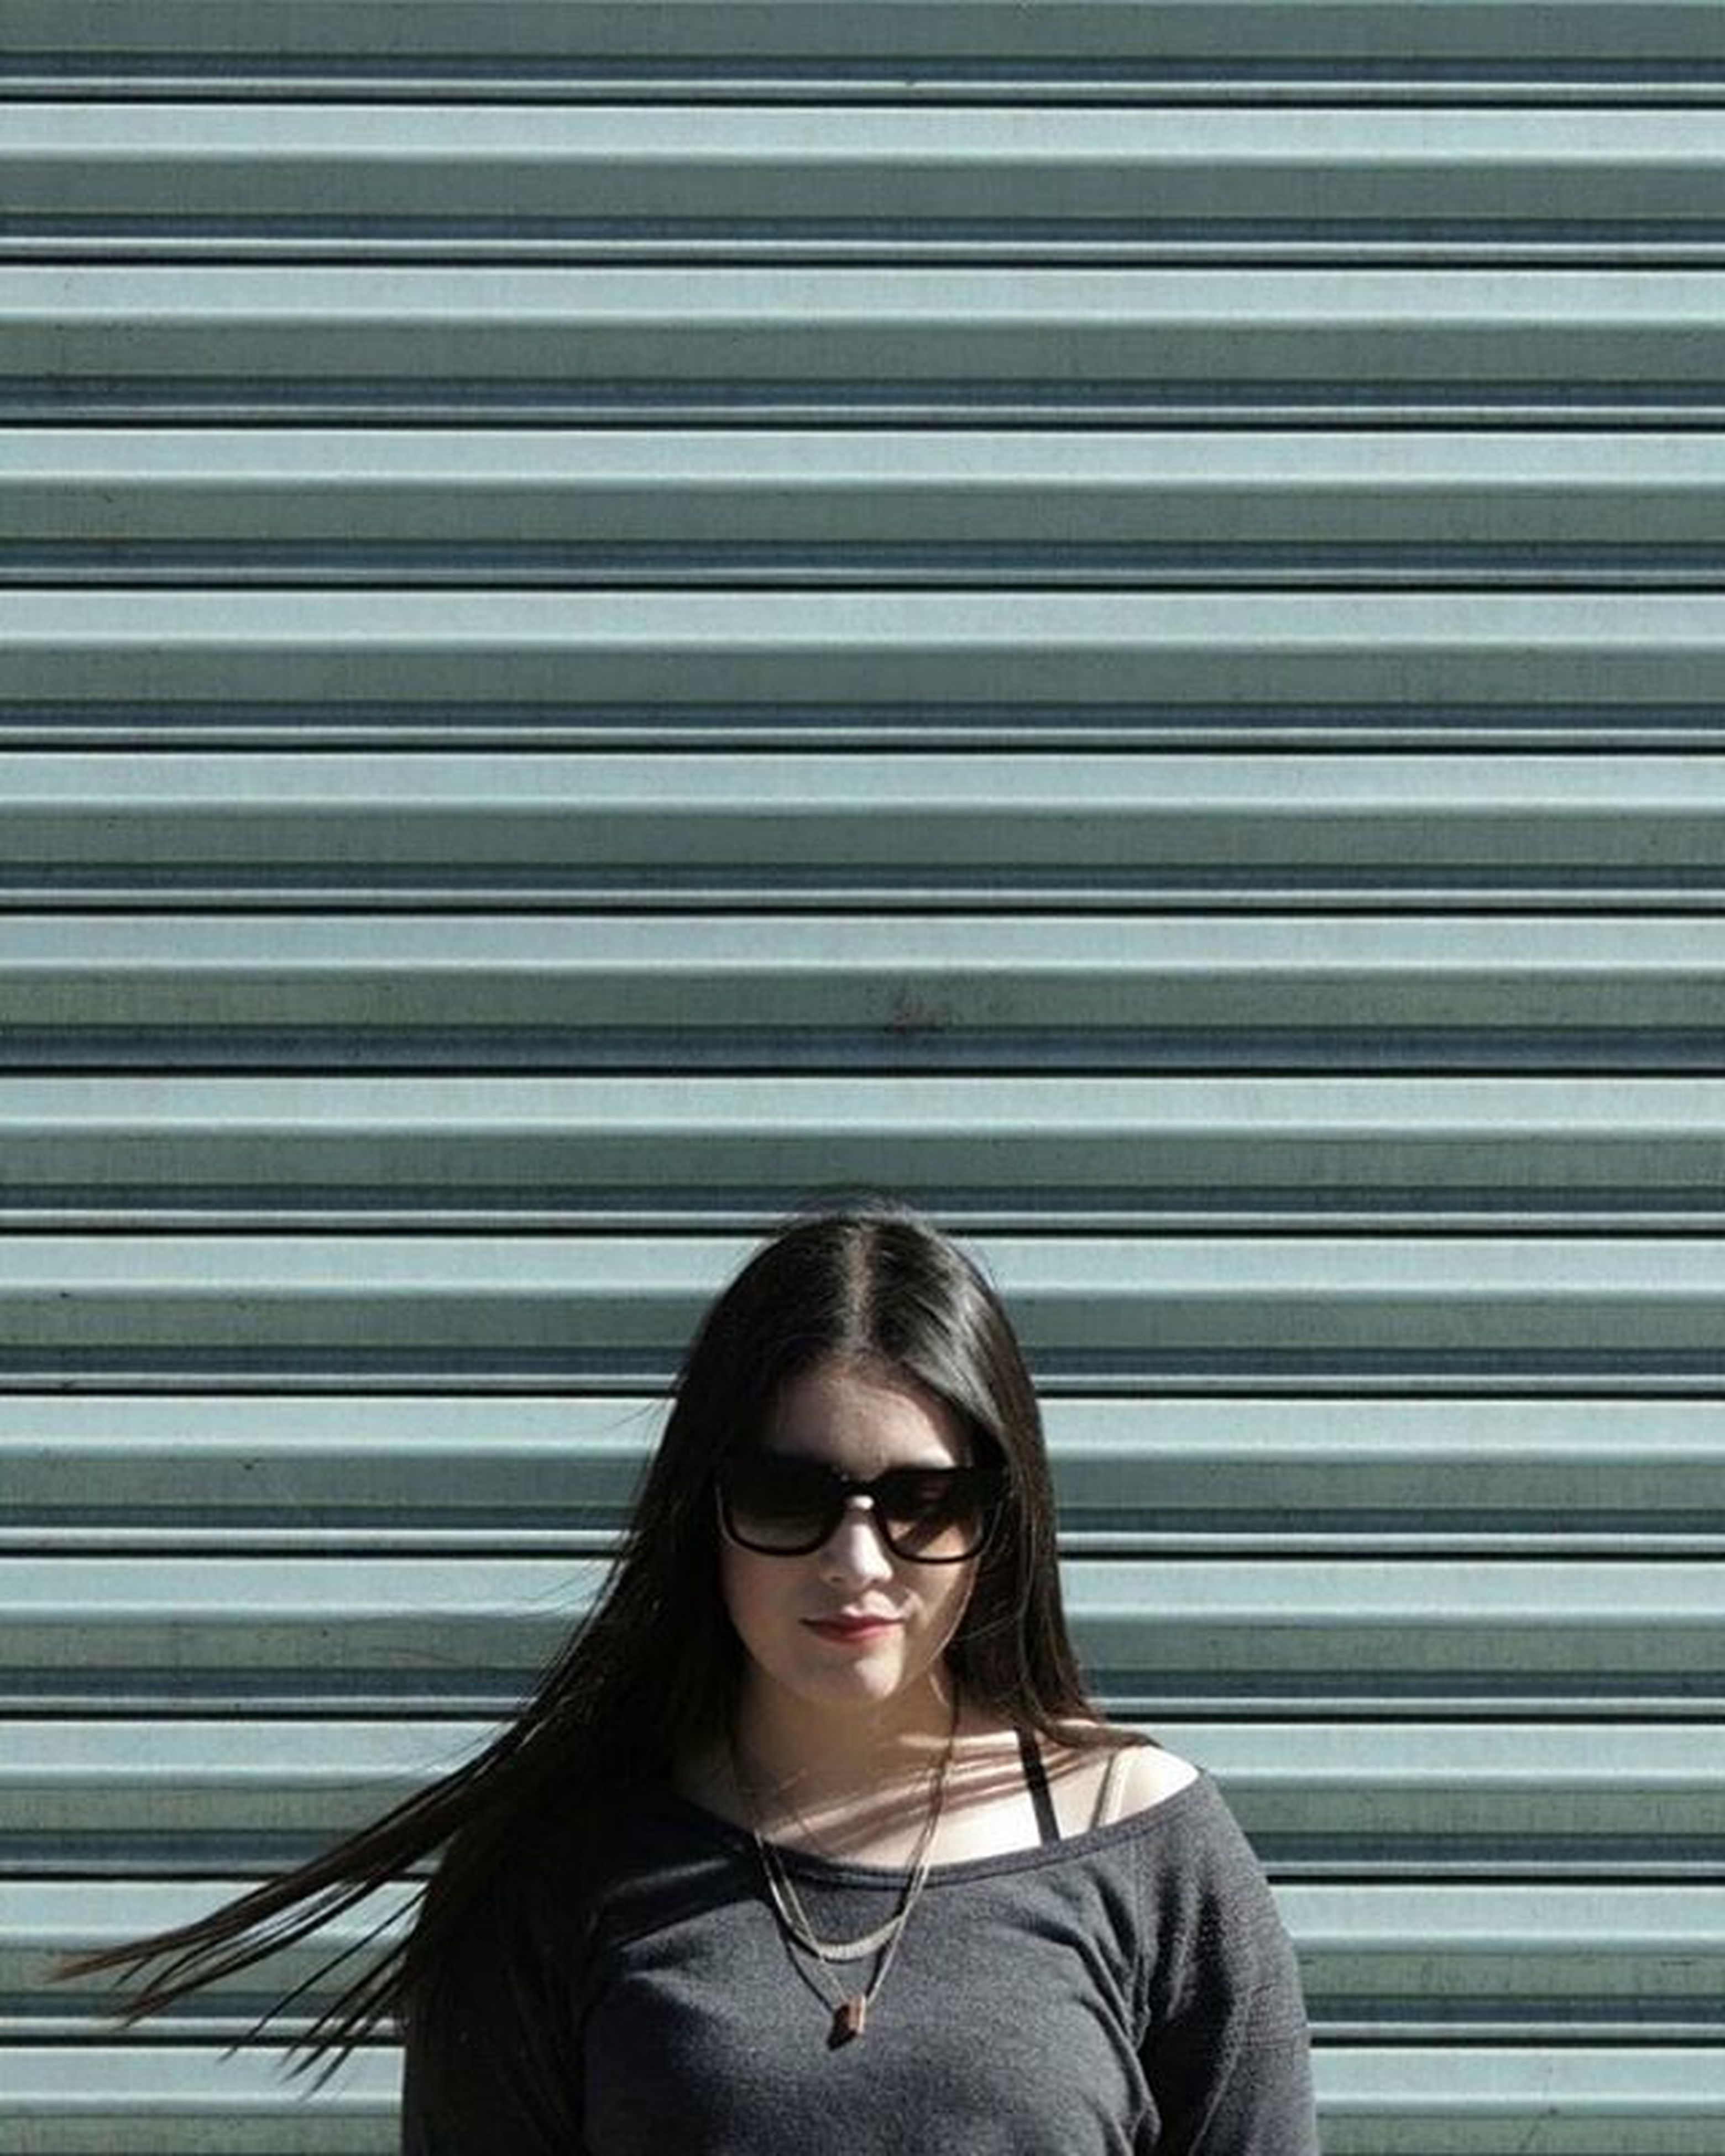 headshot, looking at camera, young adult, person, portrait, lifestyles, front view, waist up, casual clothing, leisure activity, young women, head and shoulders, built structure, focus on foreground, standing, architecture, smiling